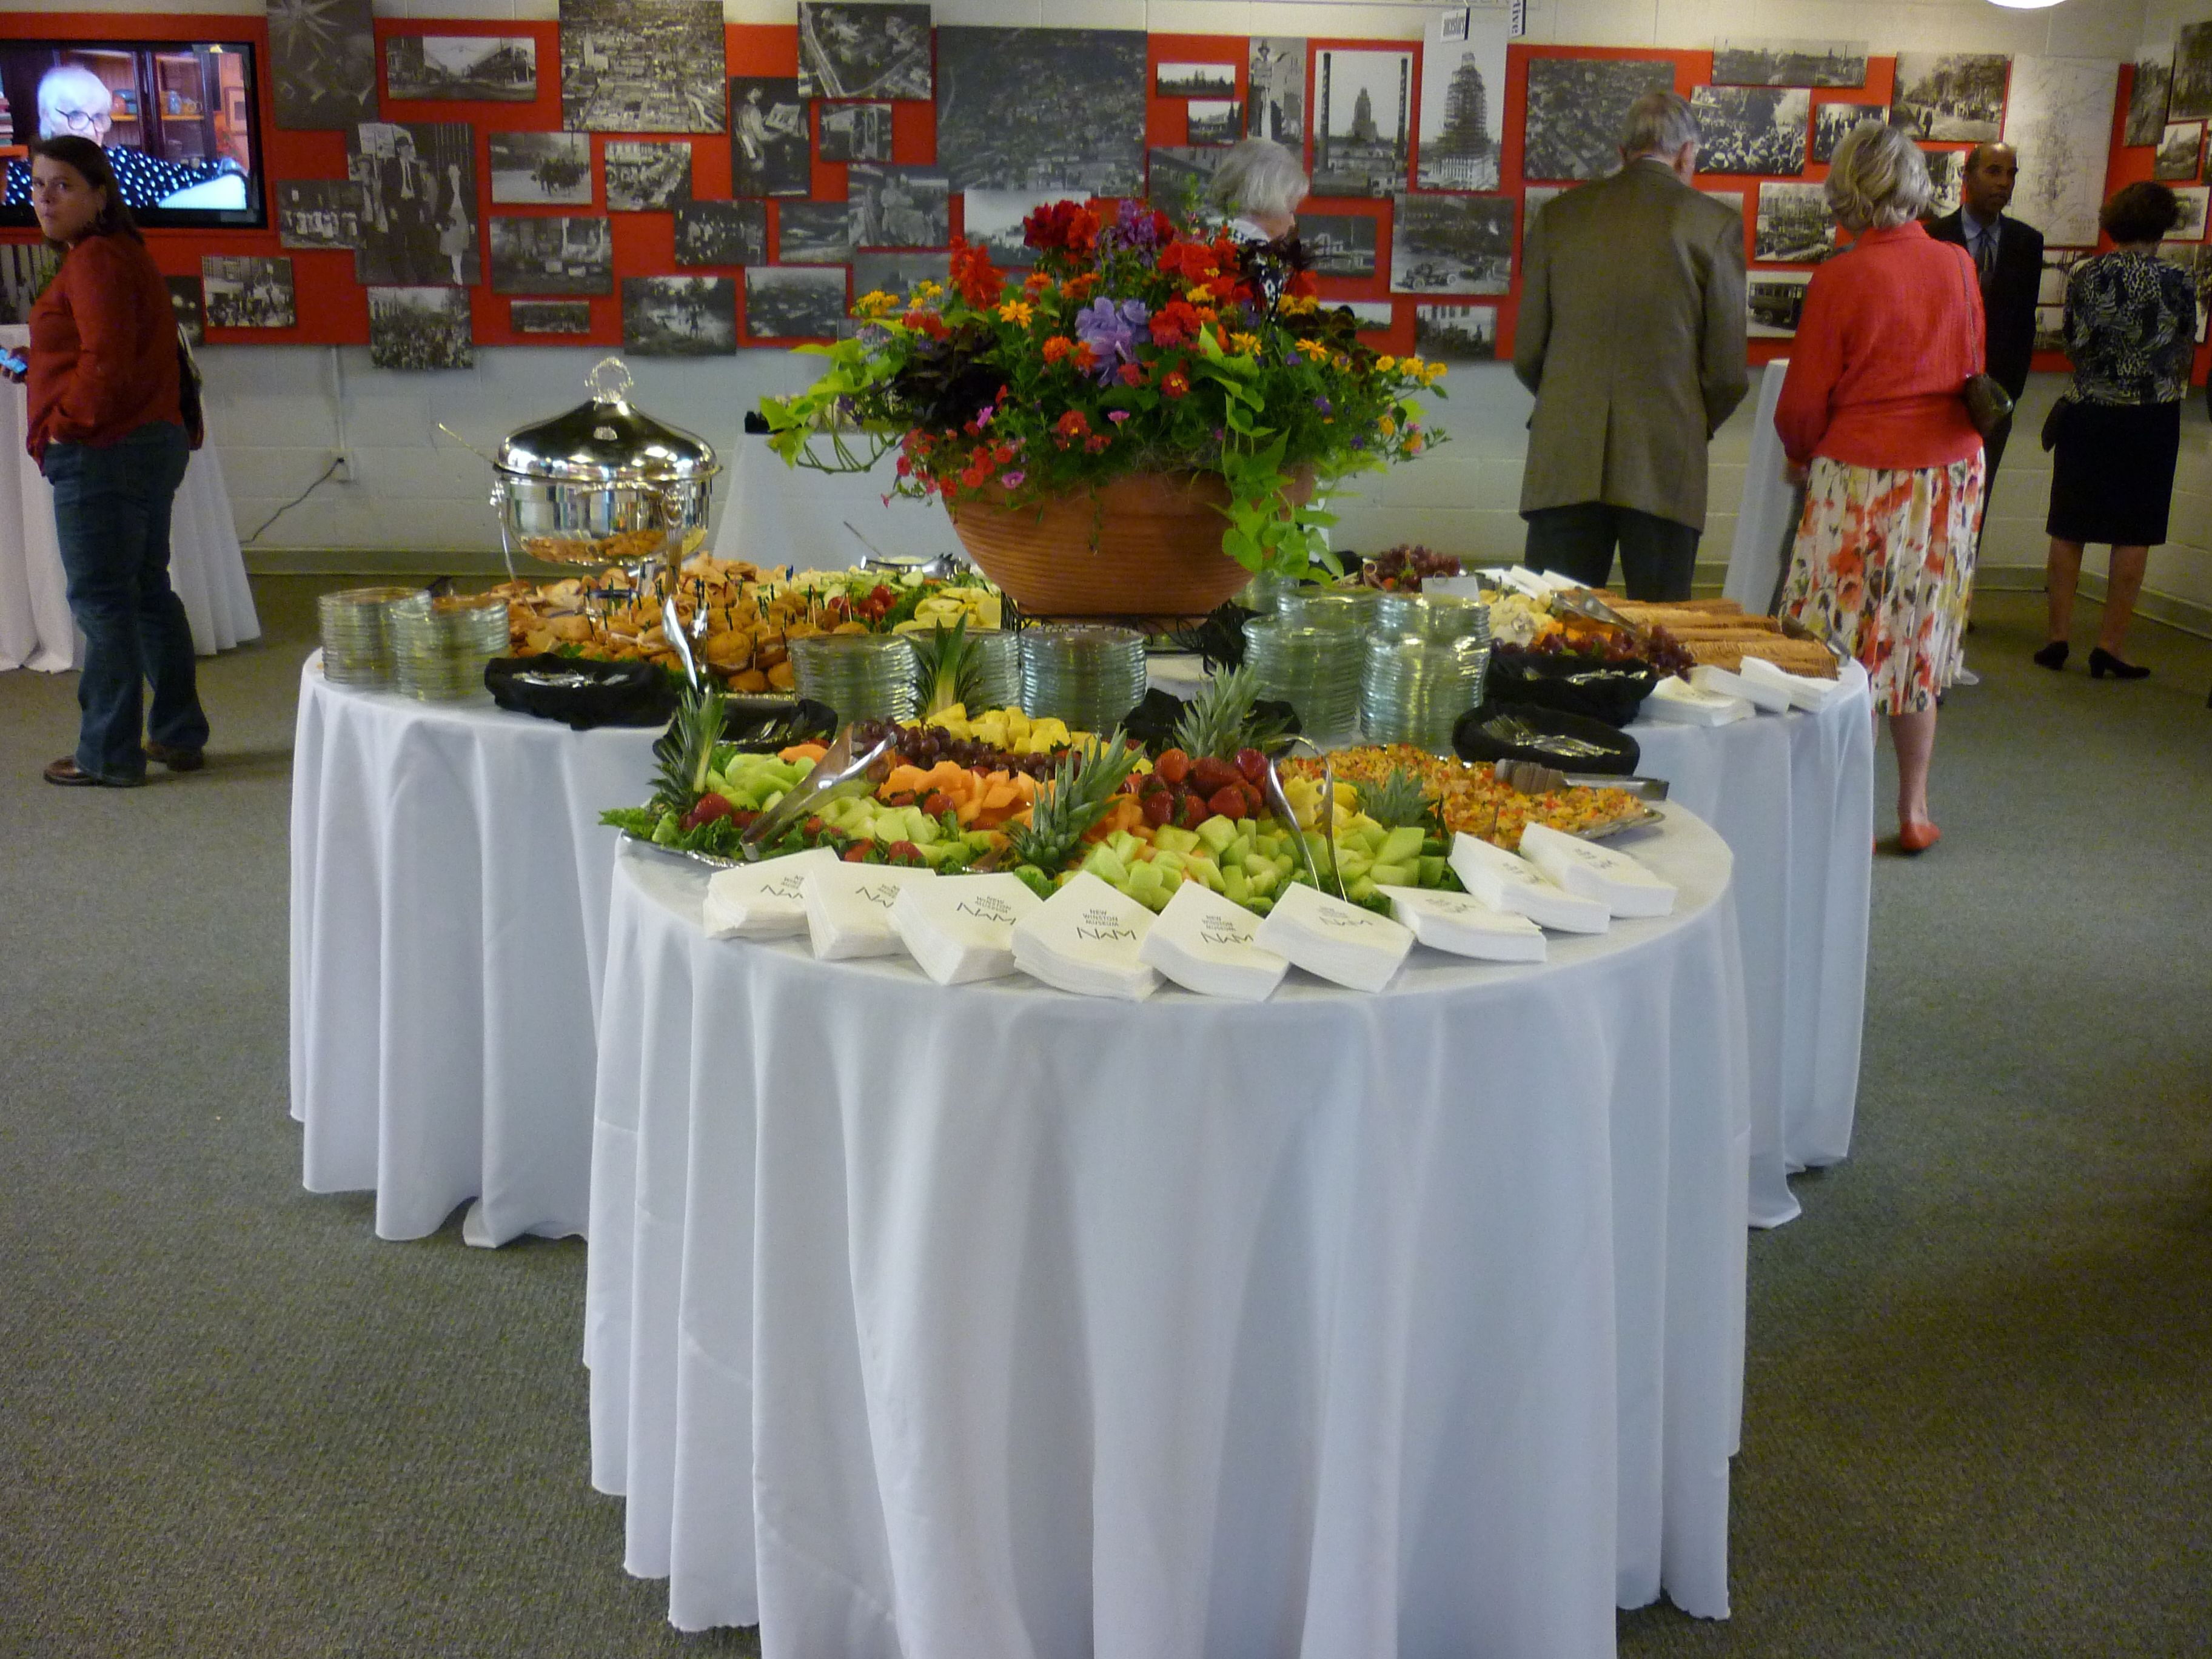 New Winston Museum Gallins Catering Display Jefferson Lakeside Cc 1700 Ave Richmond Va 23228